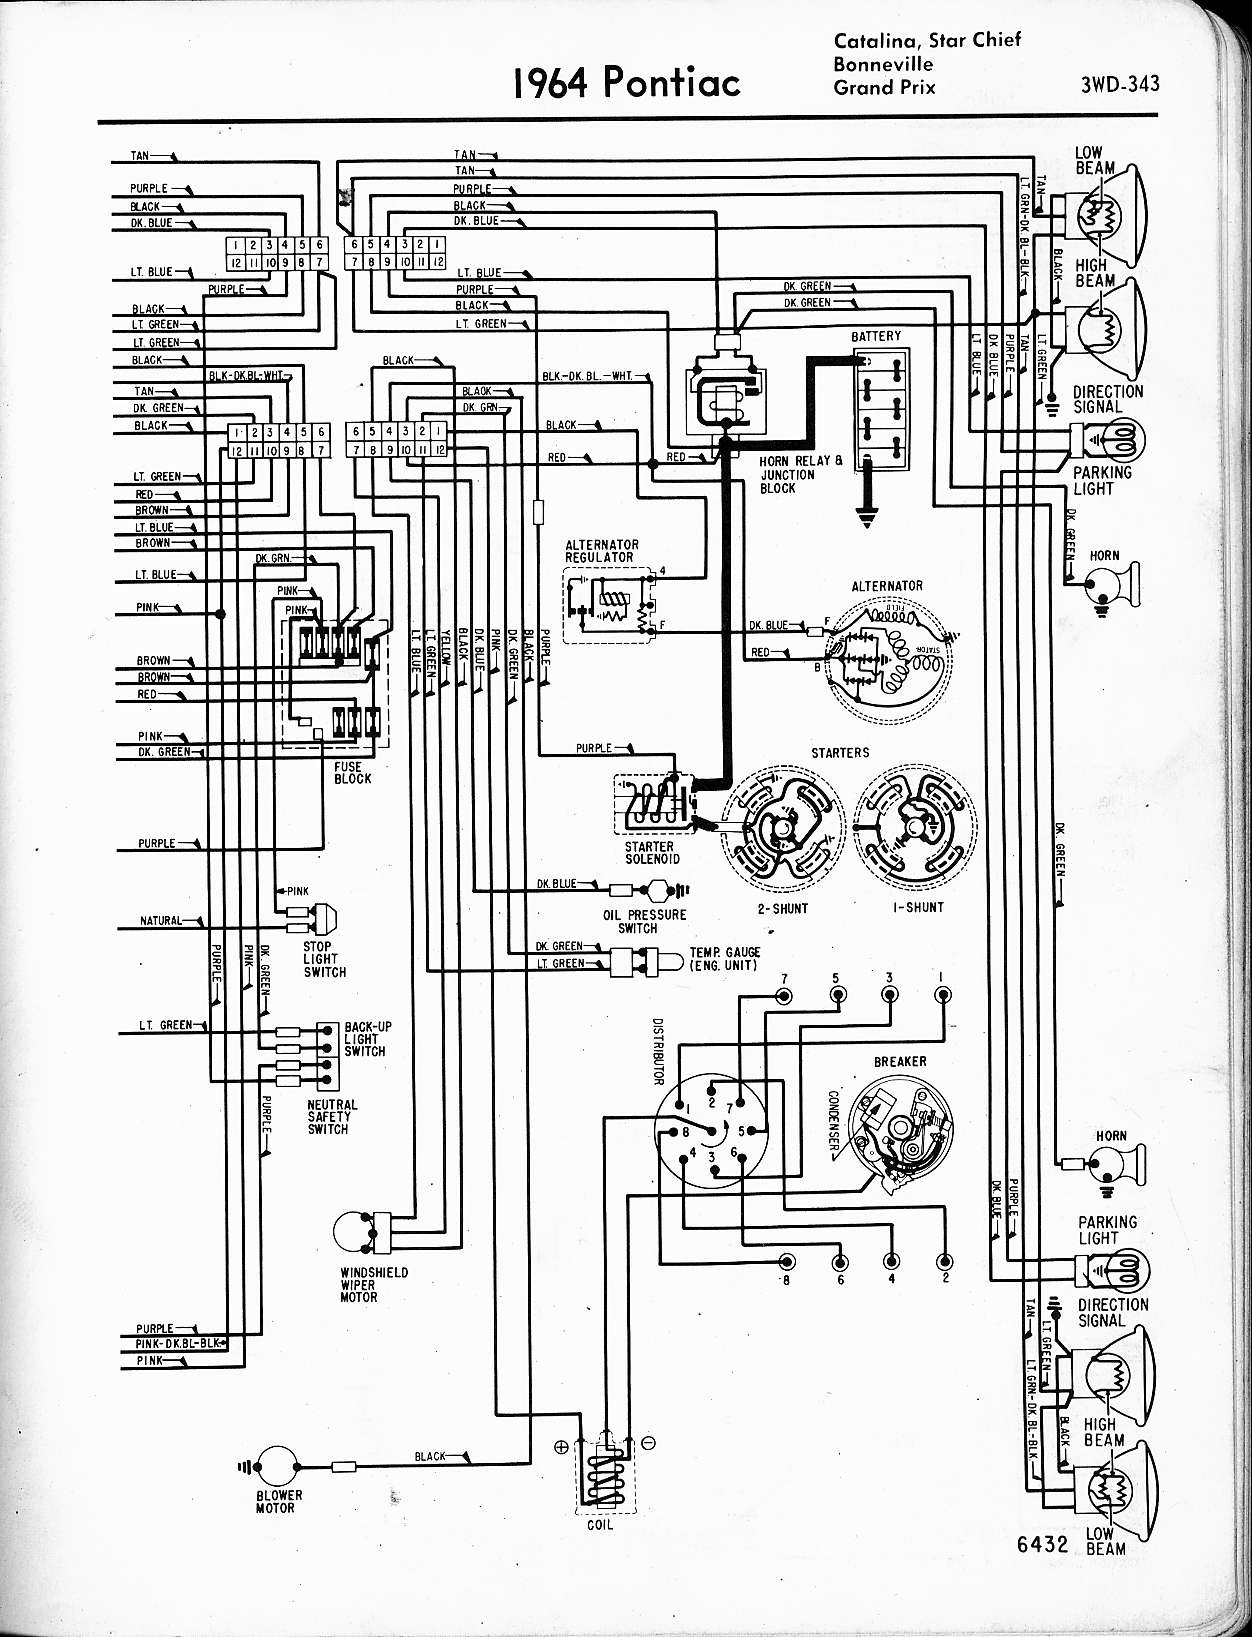 MWire5765 343 pdf] pontiac gto wiring diagram (28 pages) pontiac firebird fuse 1955 pontiac star chief wiring diagram at crackthecode.co